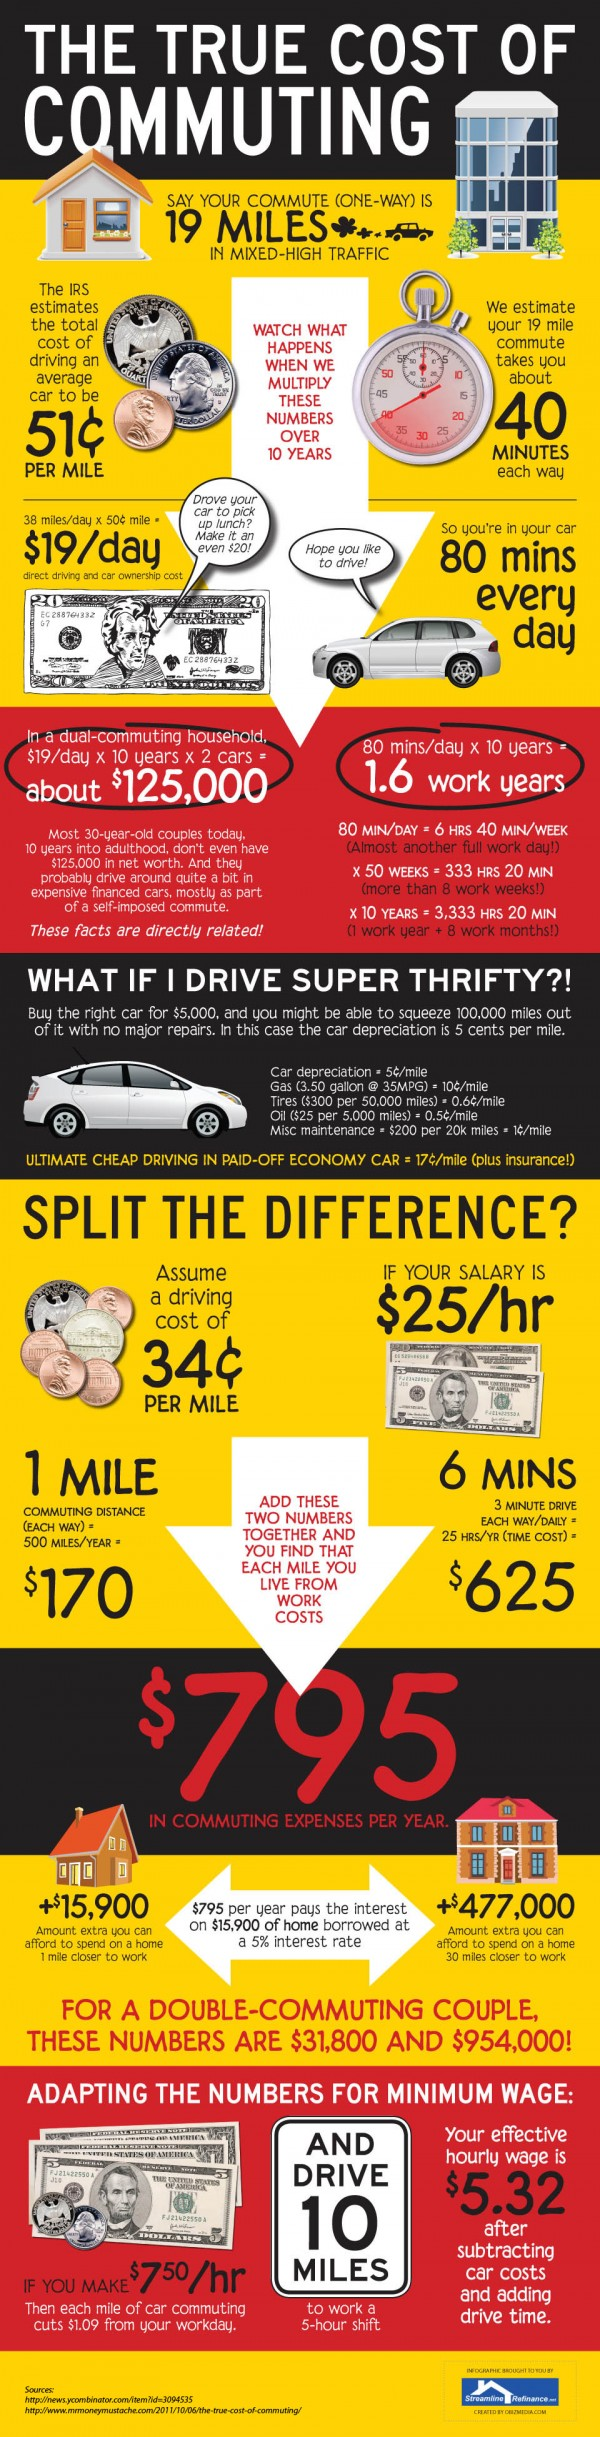 cost-of-commuting-transport-infographic2-600x2437.jpg (600×2437)